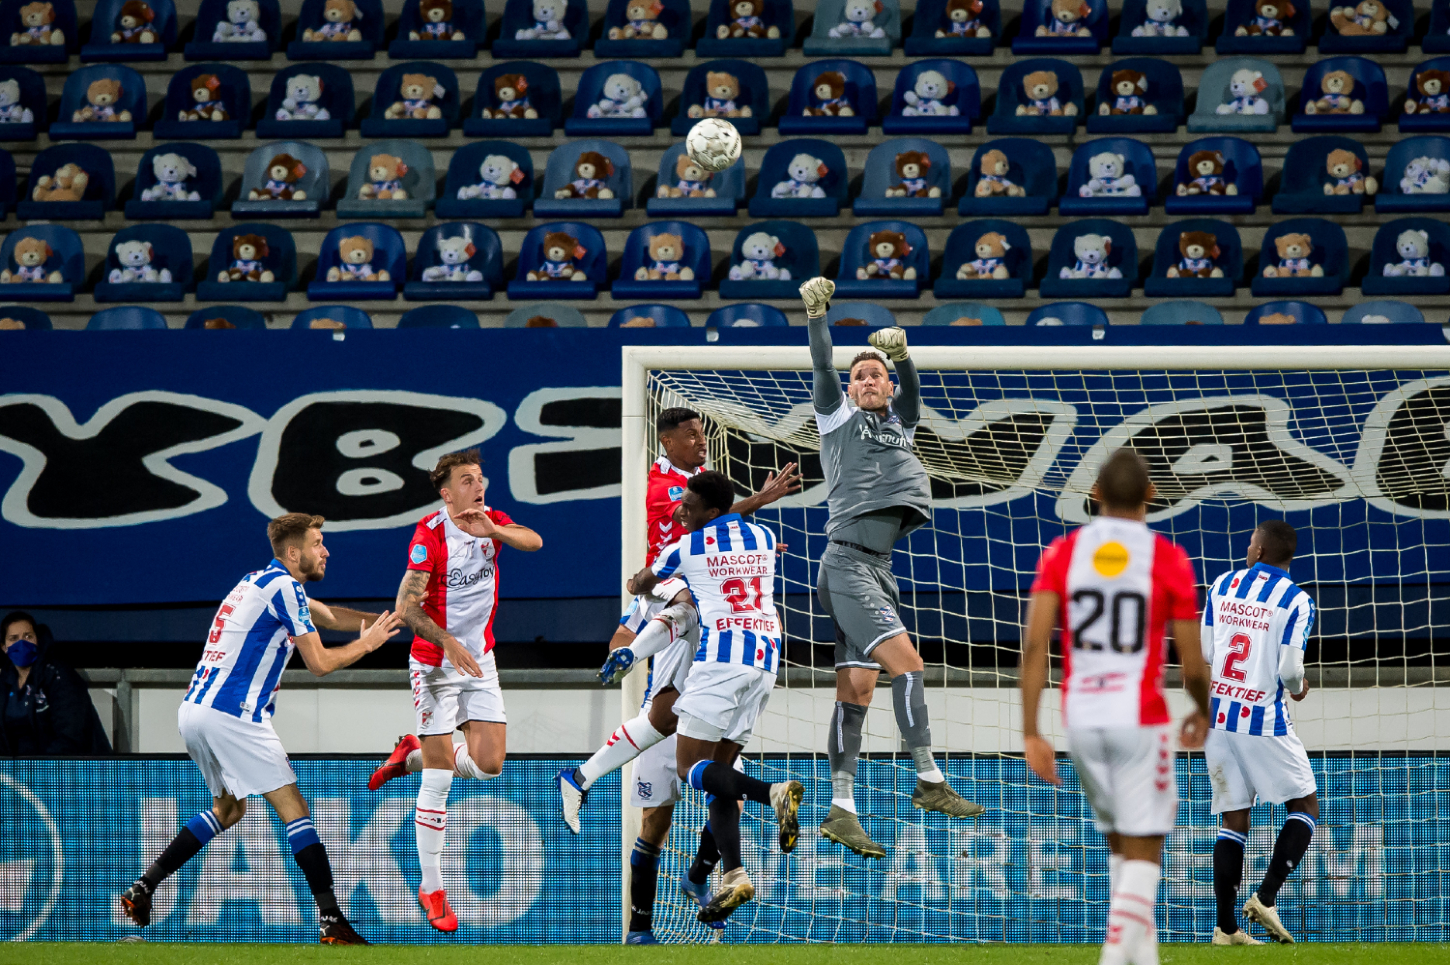 Ajax top Eredivisie after 13-0 win as Covid-hit PSV lose ground - DutchNews.nl